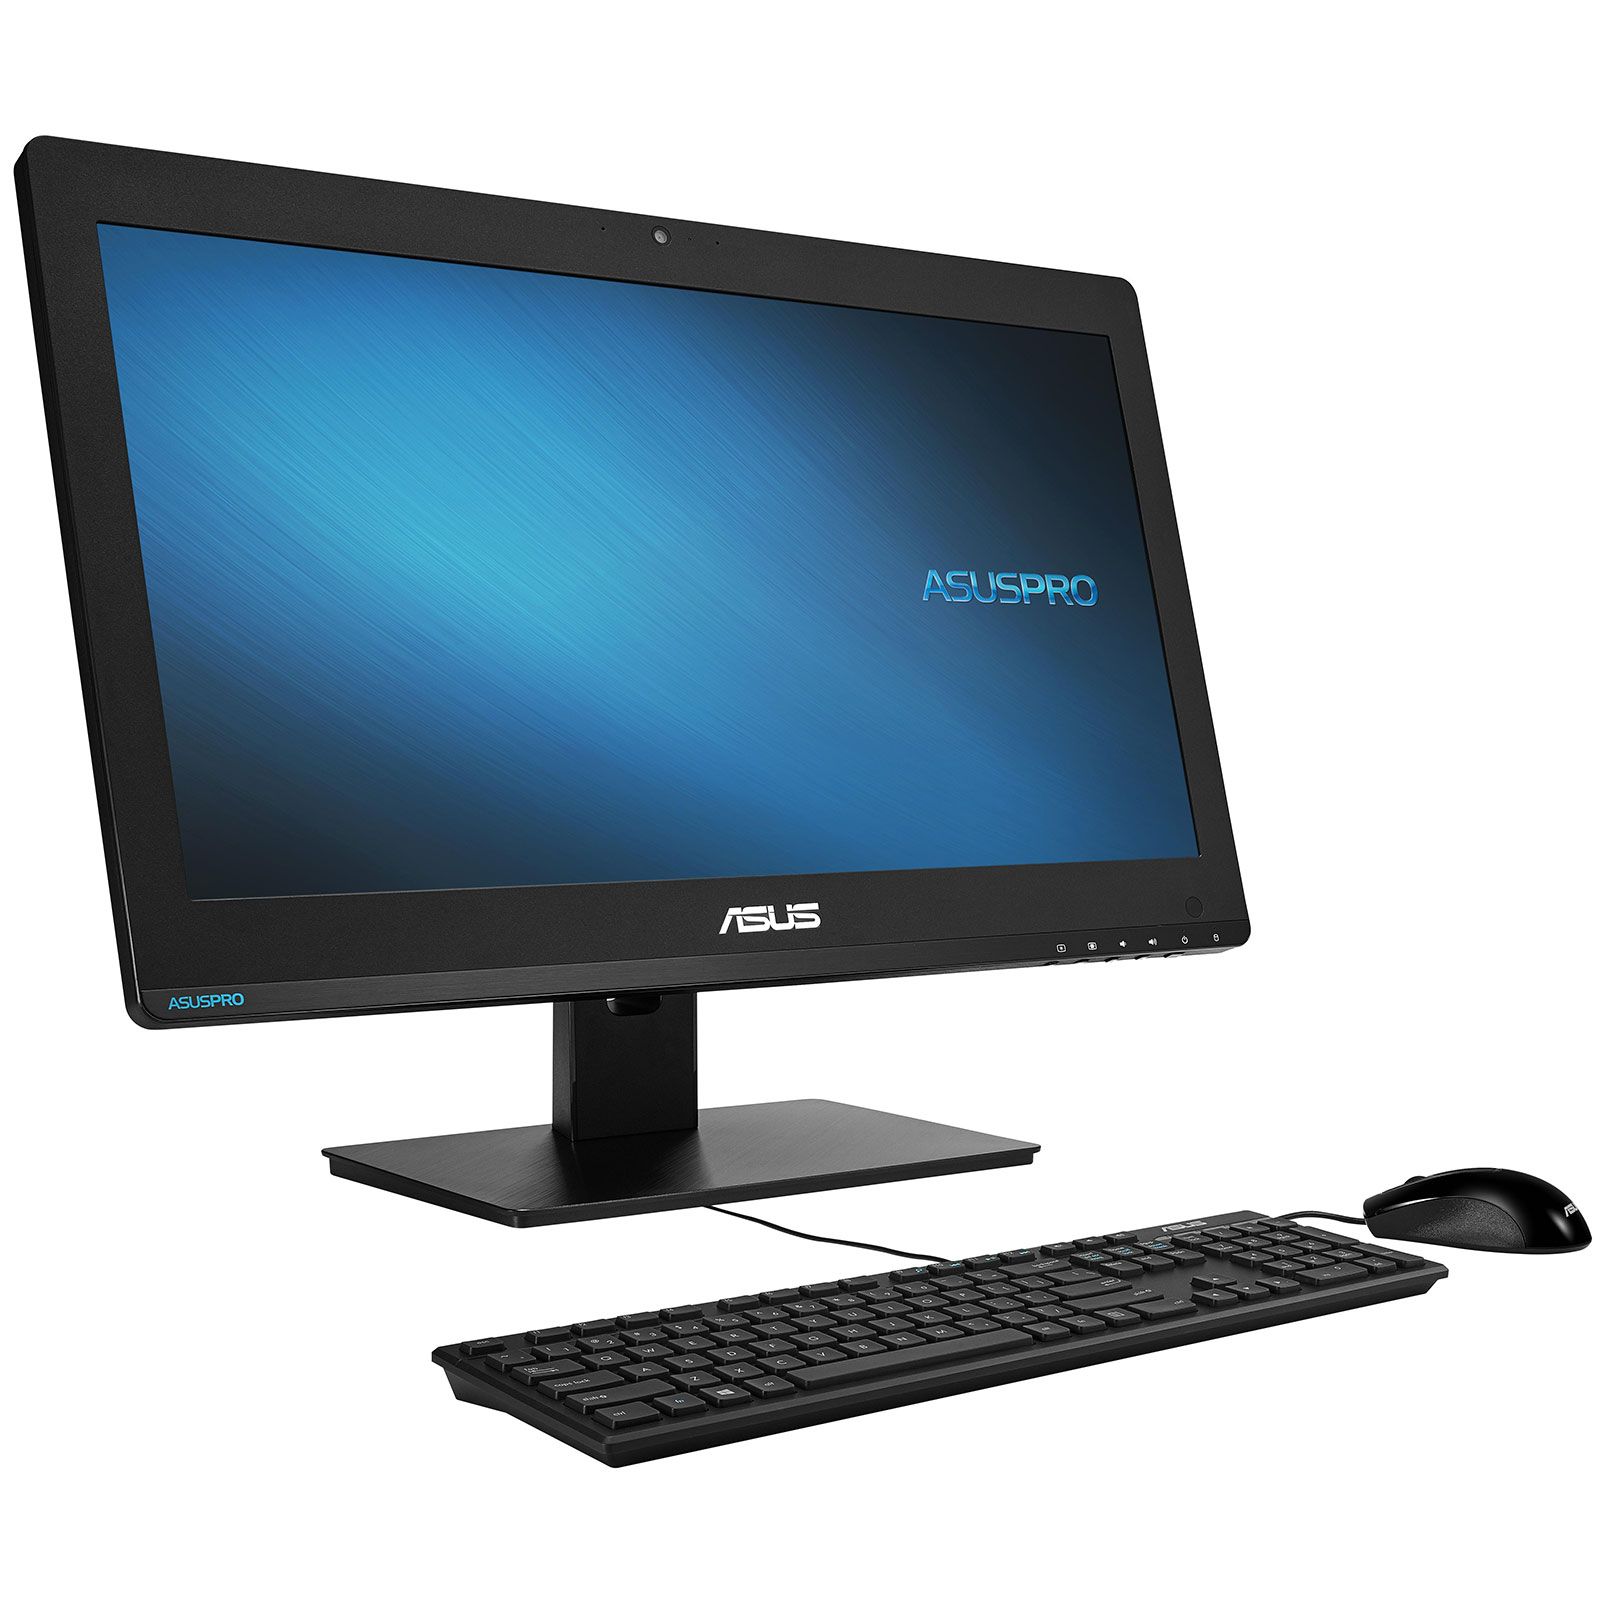 asus all in one pc a4320 bb020x pc de bureau asus sur. Black Bedroom Furniture Sets. Home Design Ideas